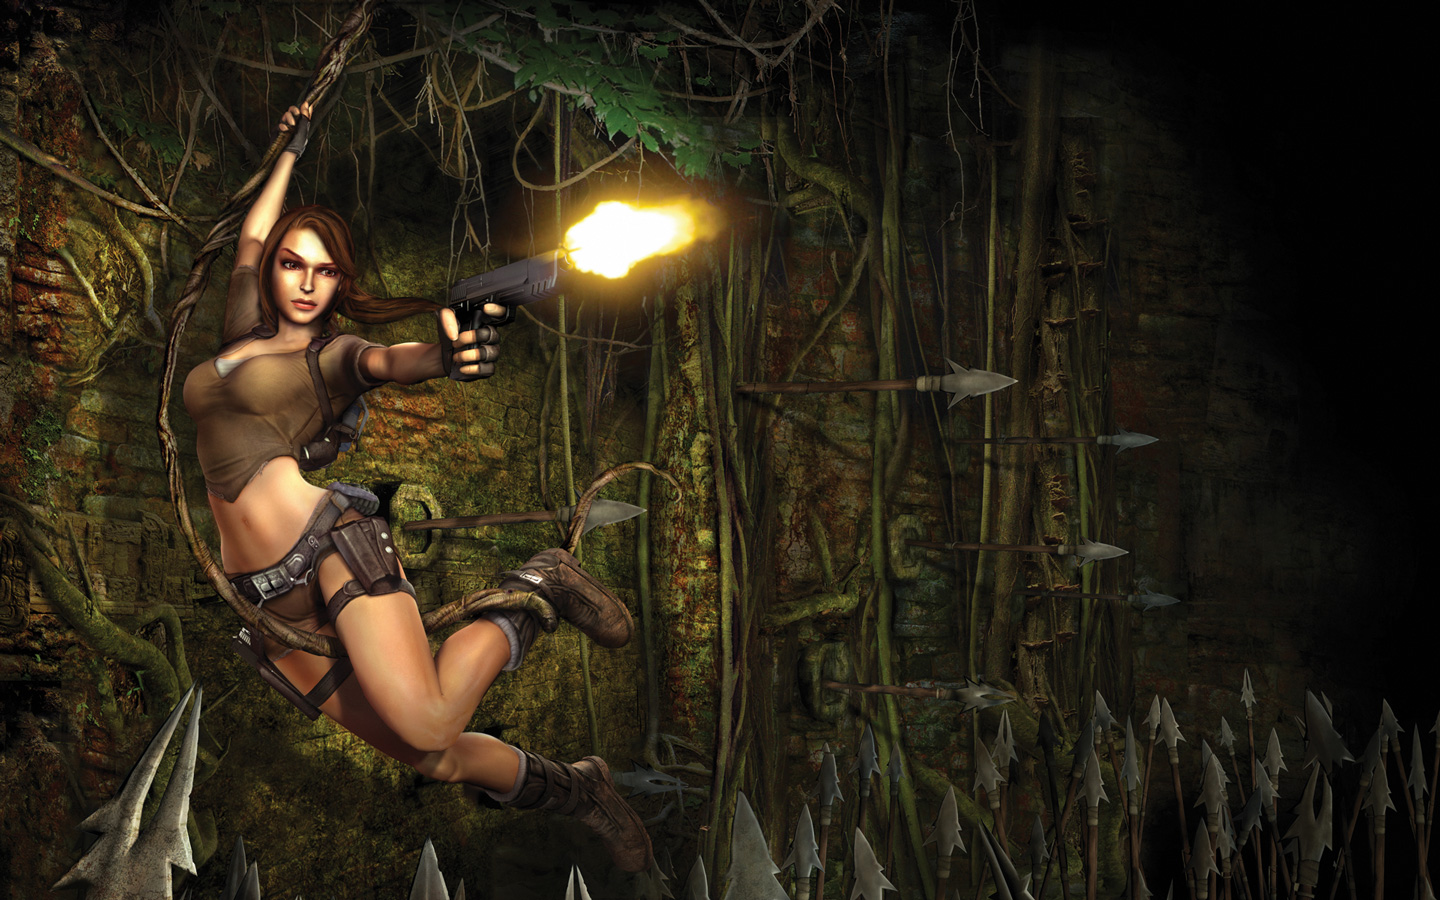 Free Tomb Raider: Legend Wallpaper in 1440x900